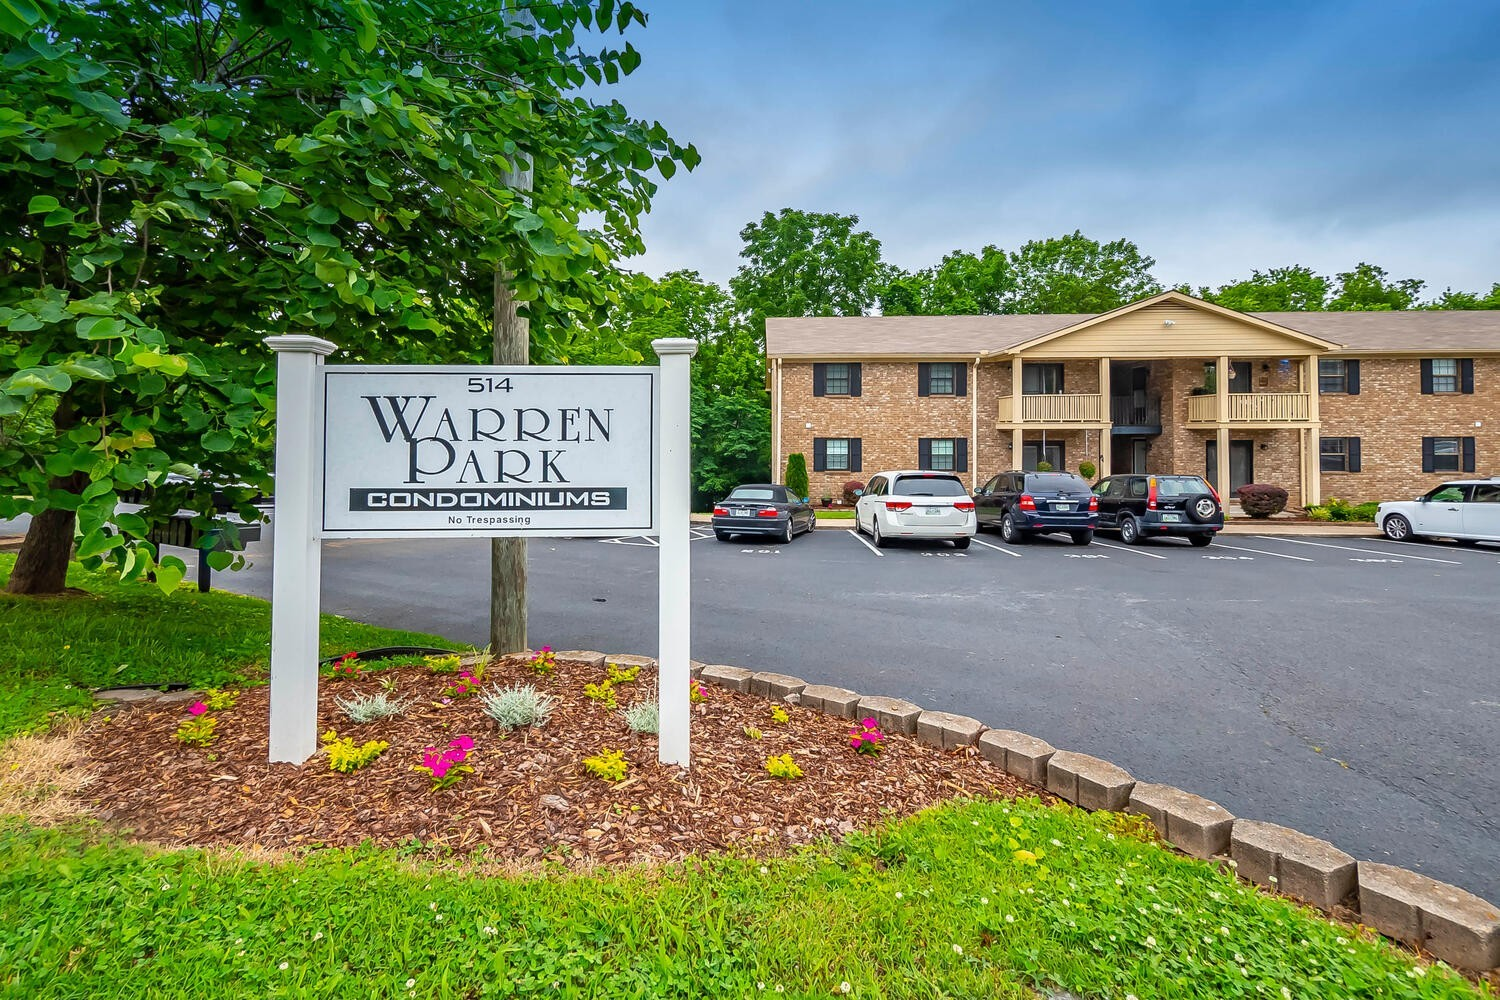 Gorgeous Renovated Main level Condo is walking distance to Downtown Franklin. Great buy for investors! Potential long term rental for $1600-1750/month. Reason for move: seller had injury and needed to move to handicap accessible living. Buyer and Buyers agent to verify all important information. Current home warranty will transfer with the sale.